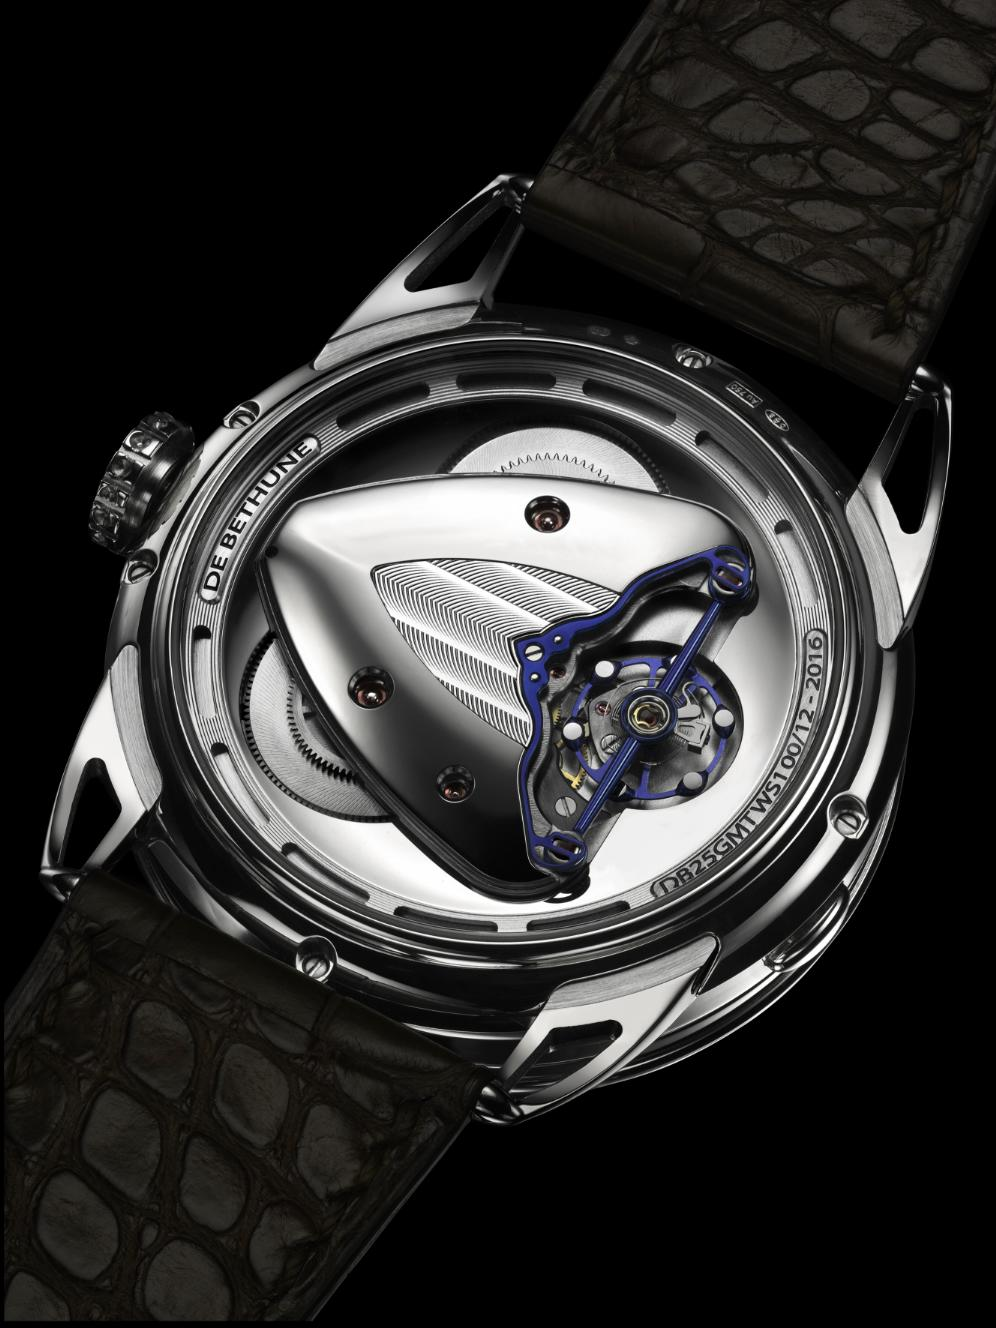 De Bethune DB25 World Traveller, DB25 World Traveller, Debethune DB25, Debethune DB25 World Traveller